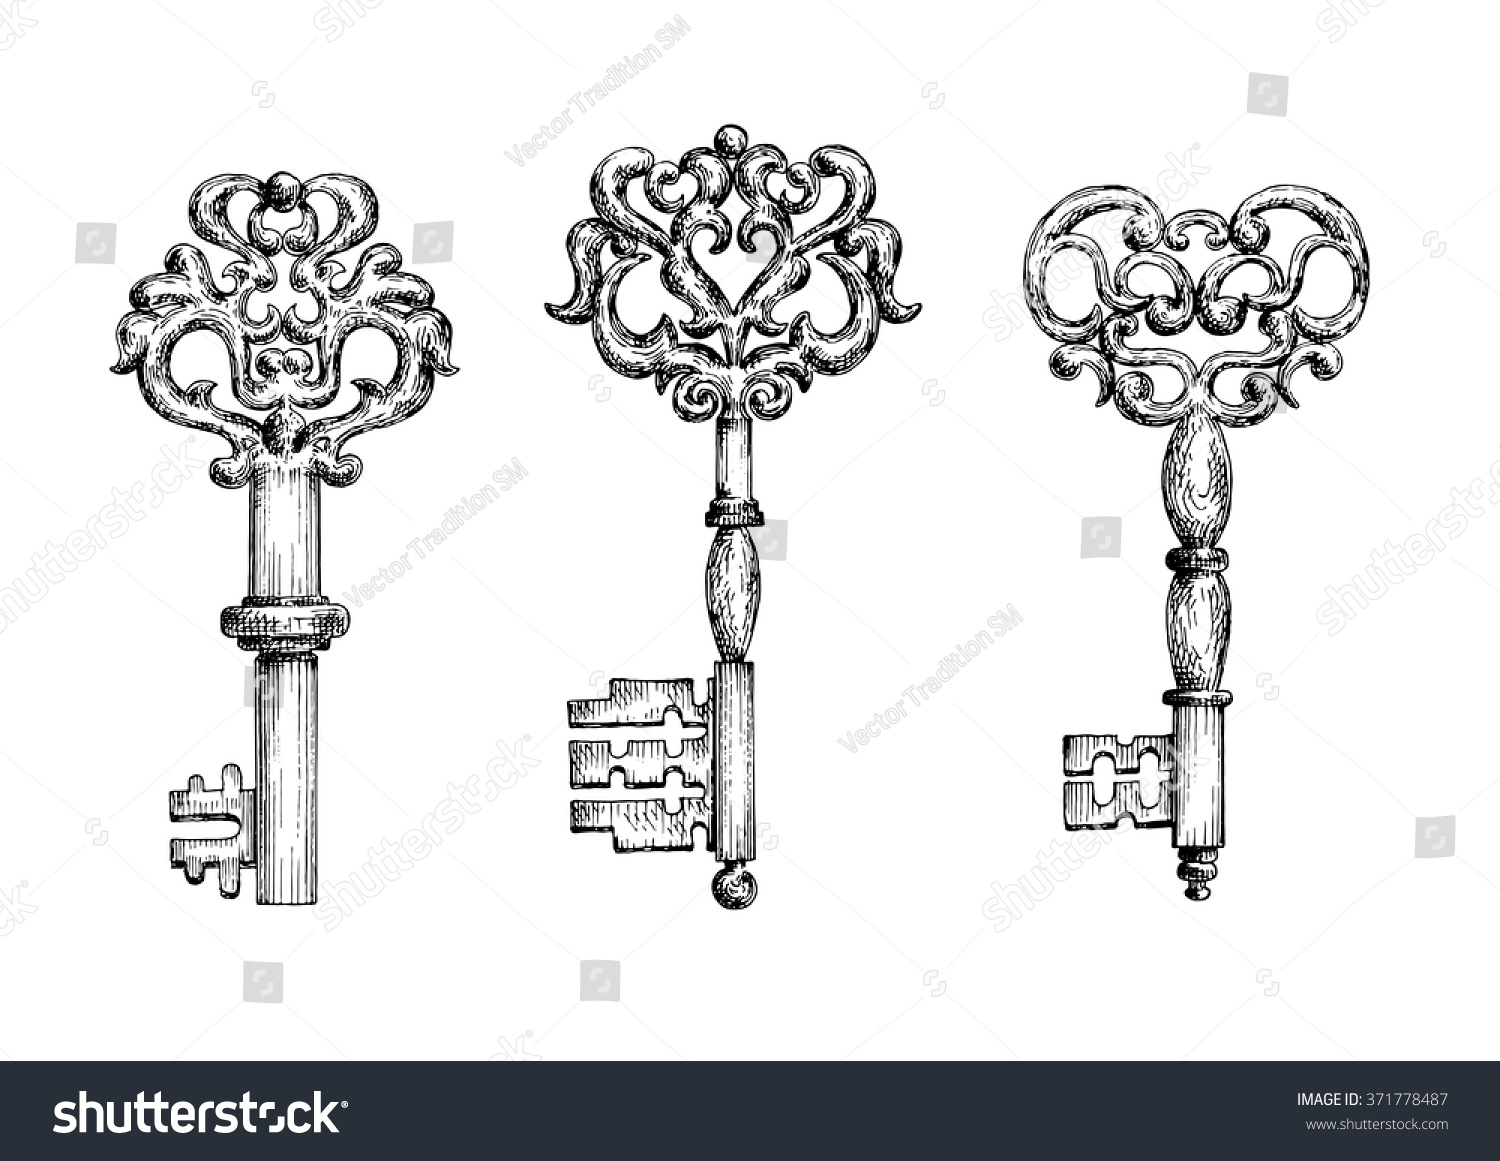 vintage keys sketch icons tattoo medieval lager vektor 371778487 shutterstock. Black Bedroom Furniture Sets. Home Design Ideas